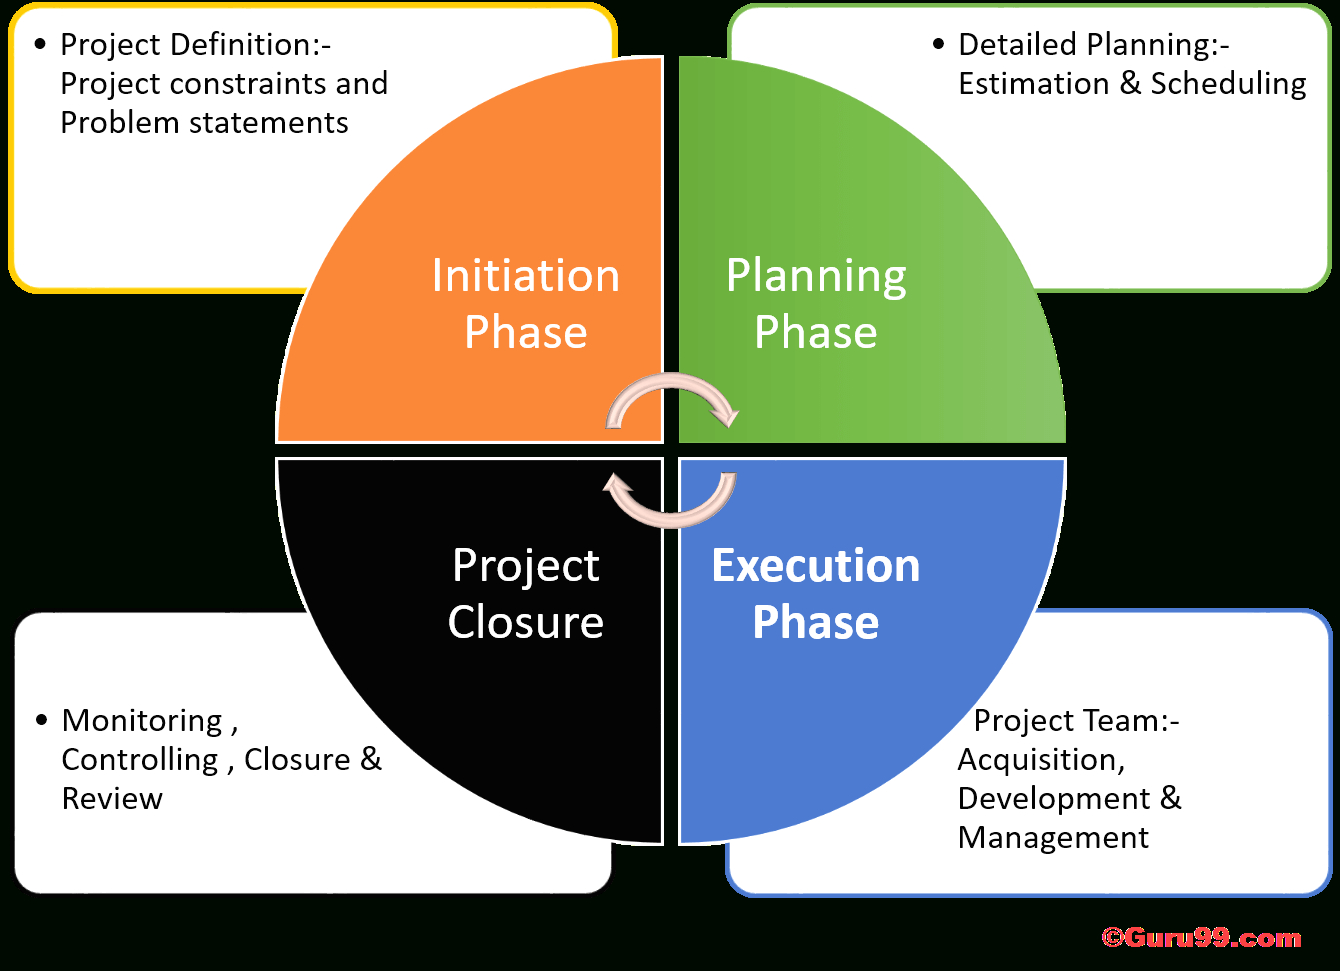 Phases Of Project Management Life Cycle with regard to Er Diagram Guru99